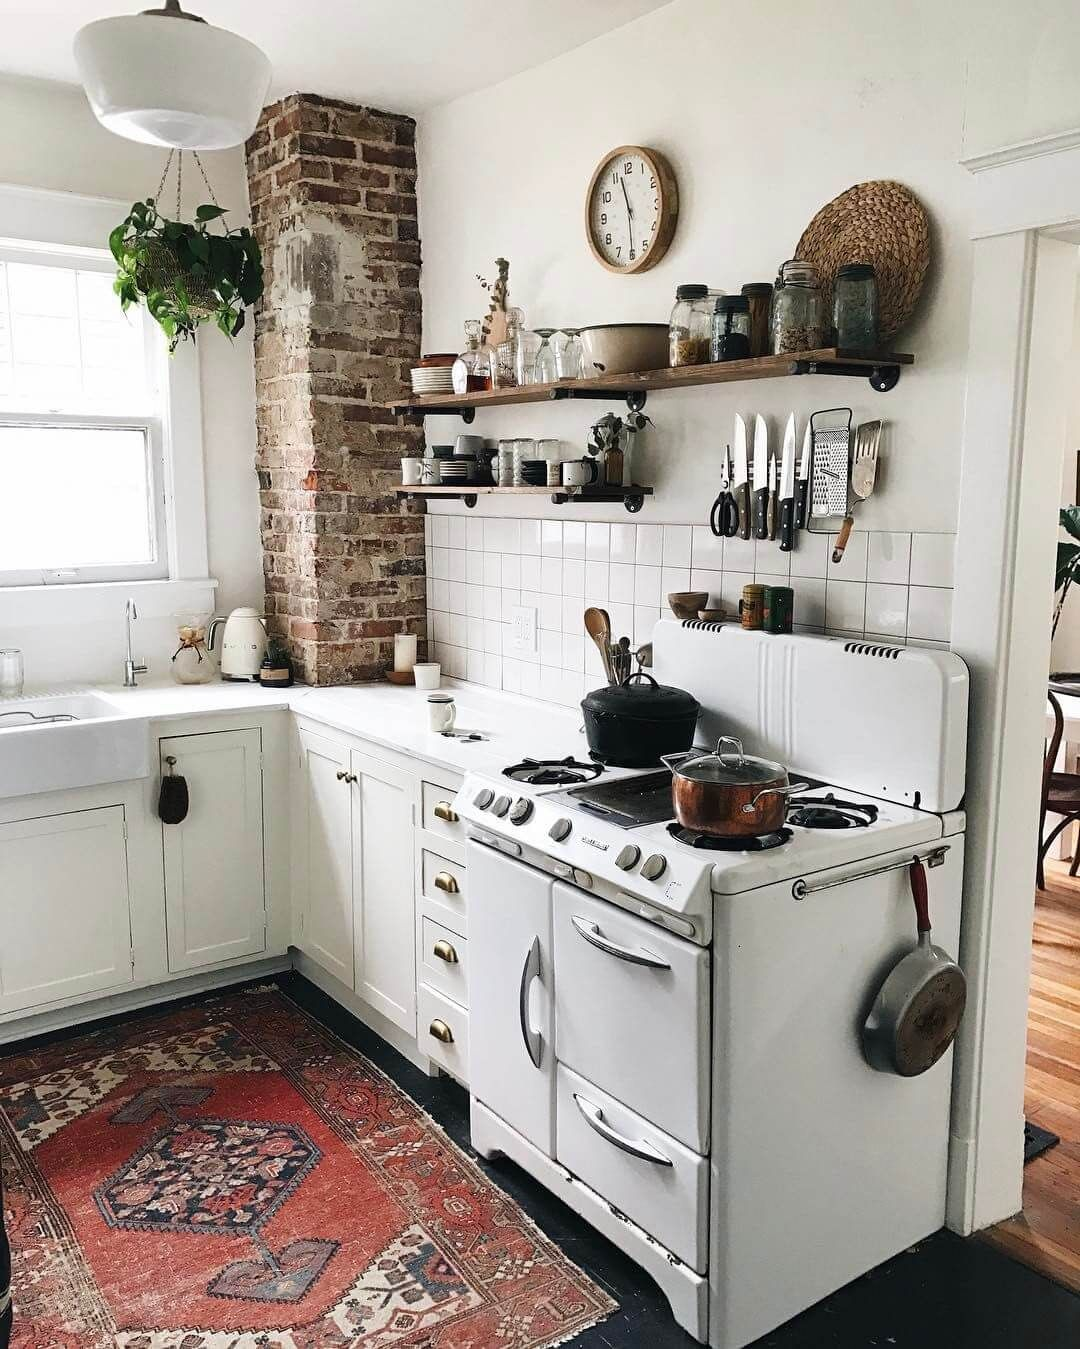 23 Delightful Cottage Kitchen Design And Decorating Ideas That Will Add Charm To Your Home Cottage Kitchen Design Kitchen Remodel Small Kitchen Design Small